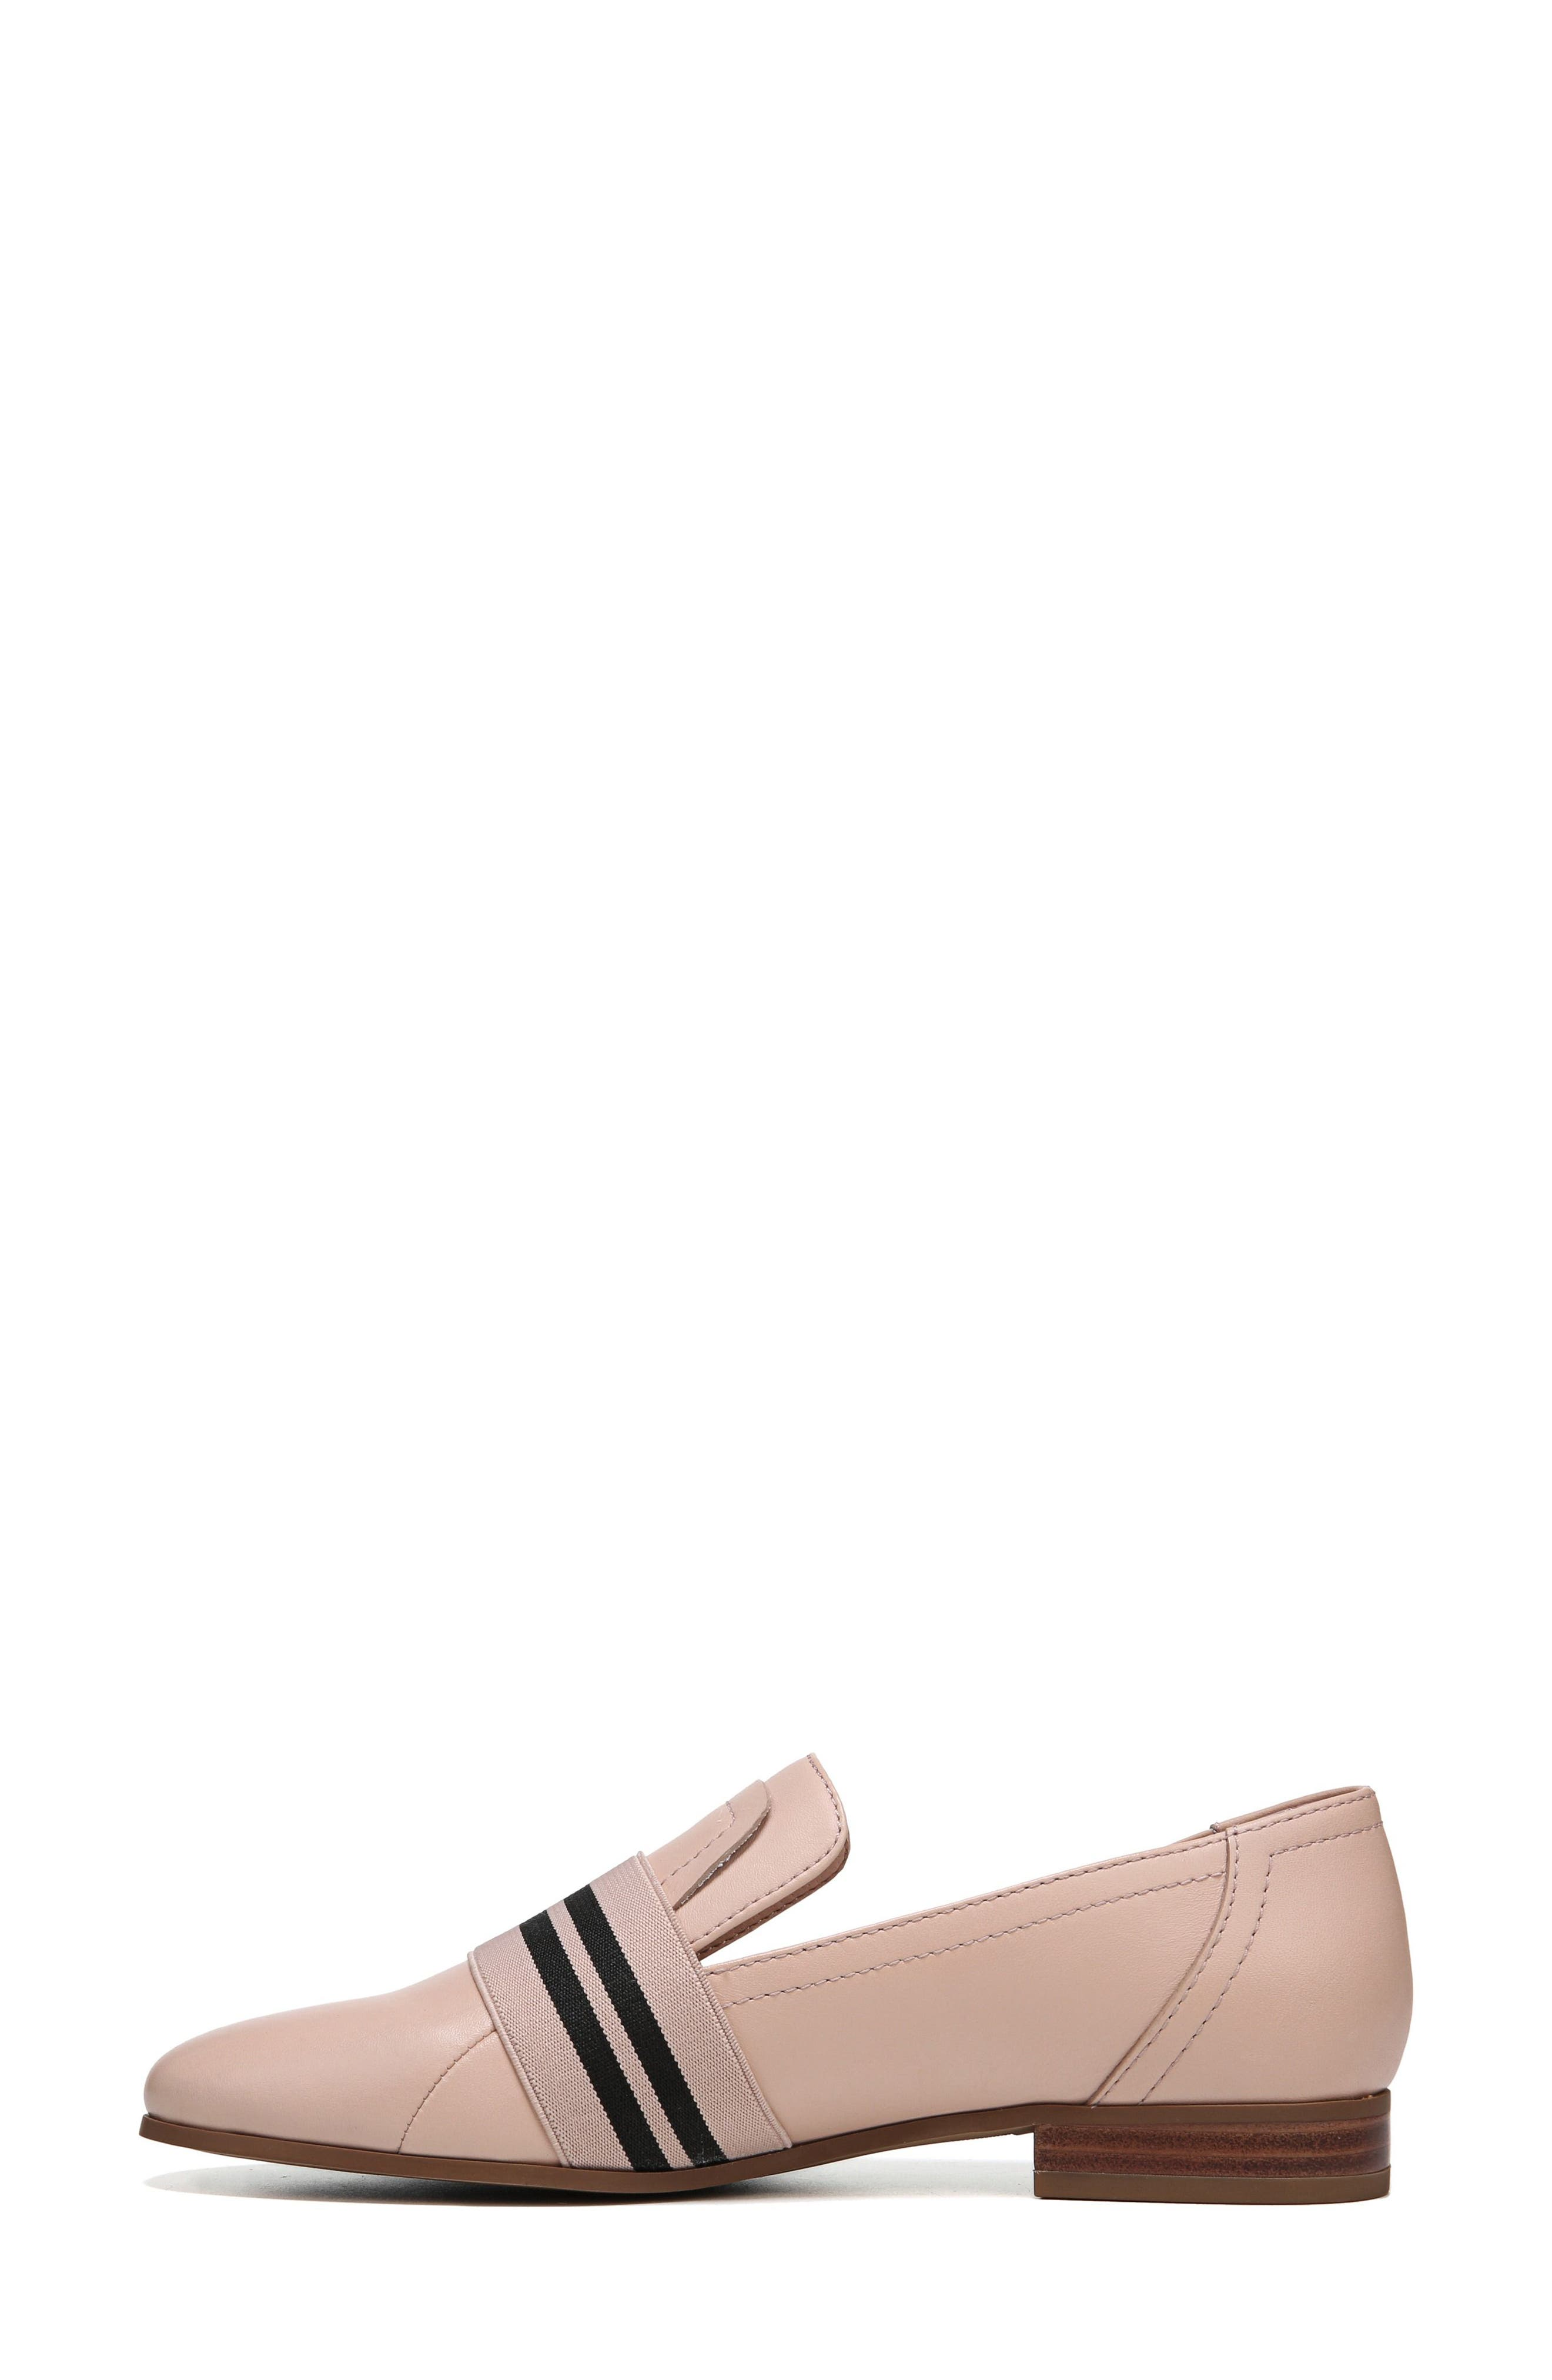 Odyssey Loafer,                             Alternate thumbnail 4, color,                             Blush Leather